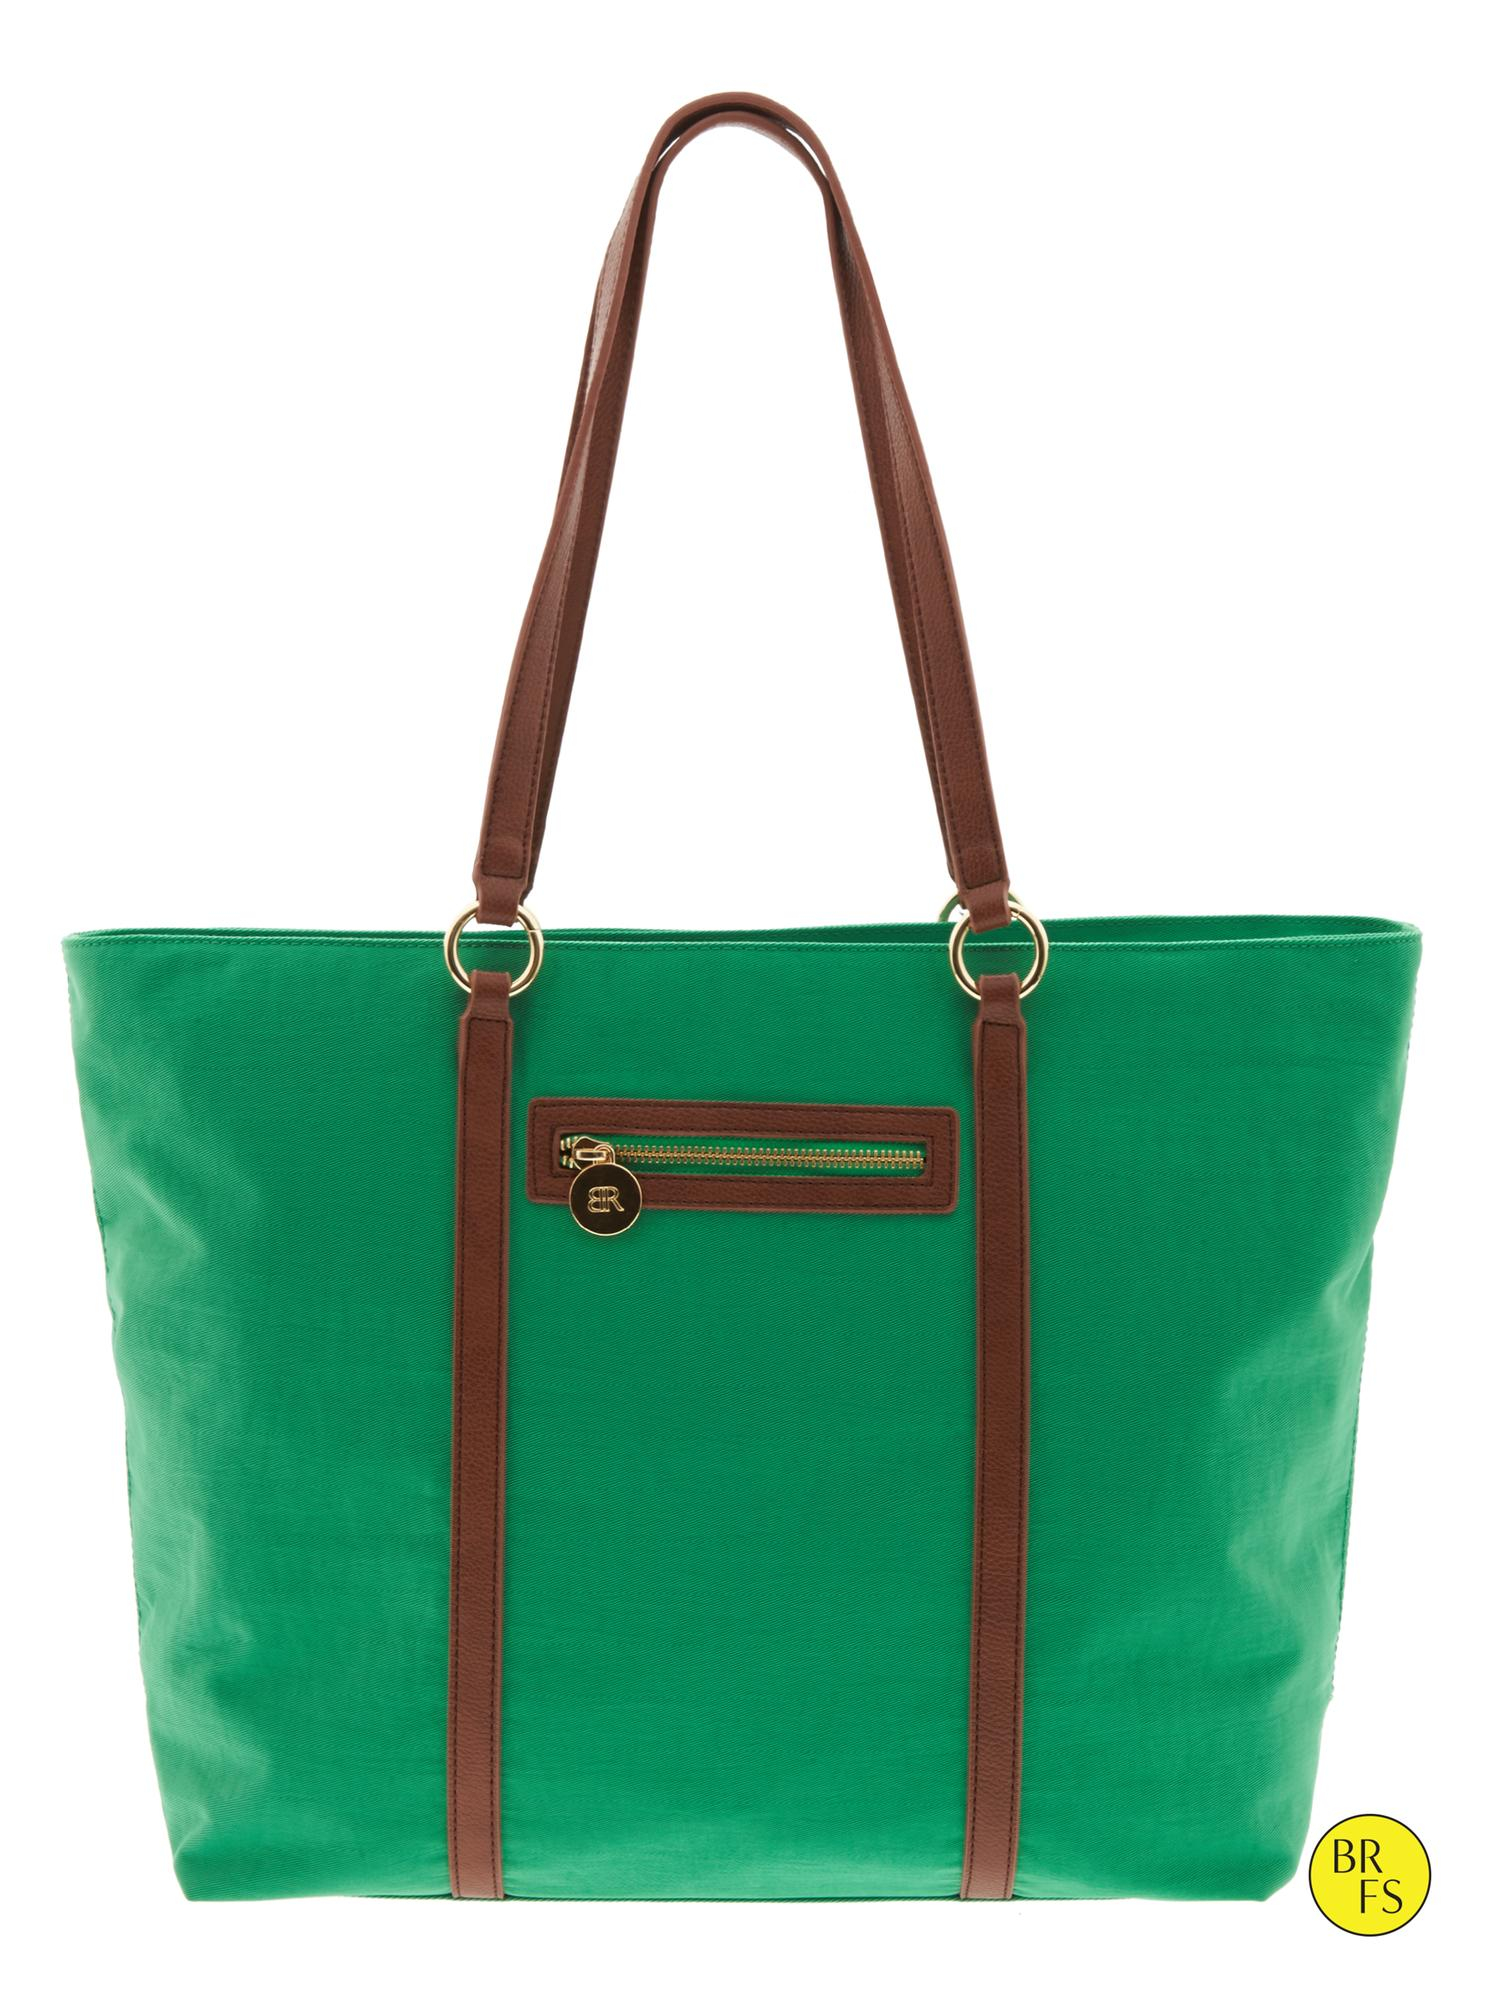 Find great deals on eBay for banana republic tote bag. Shop with confidence.